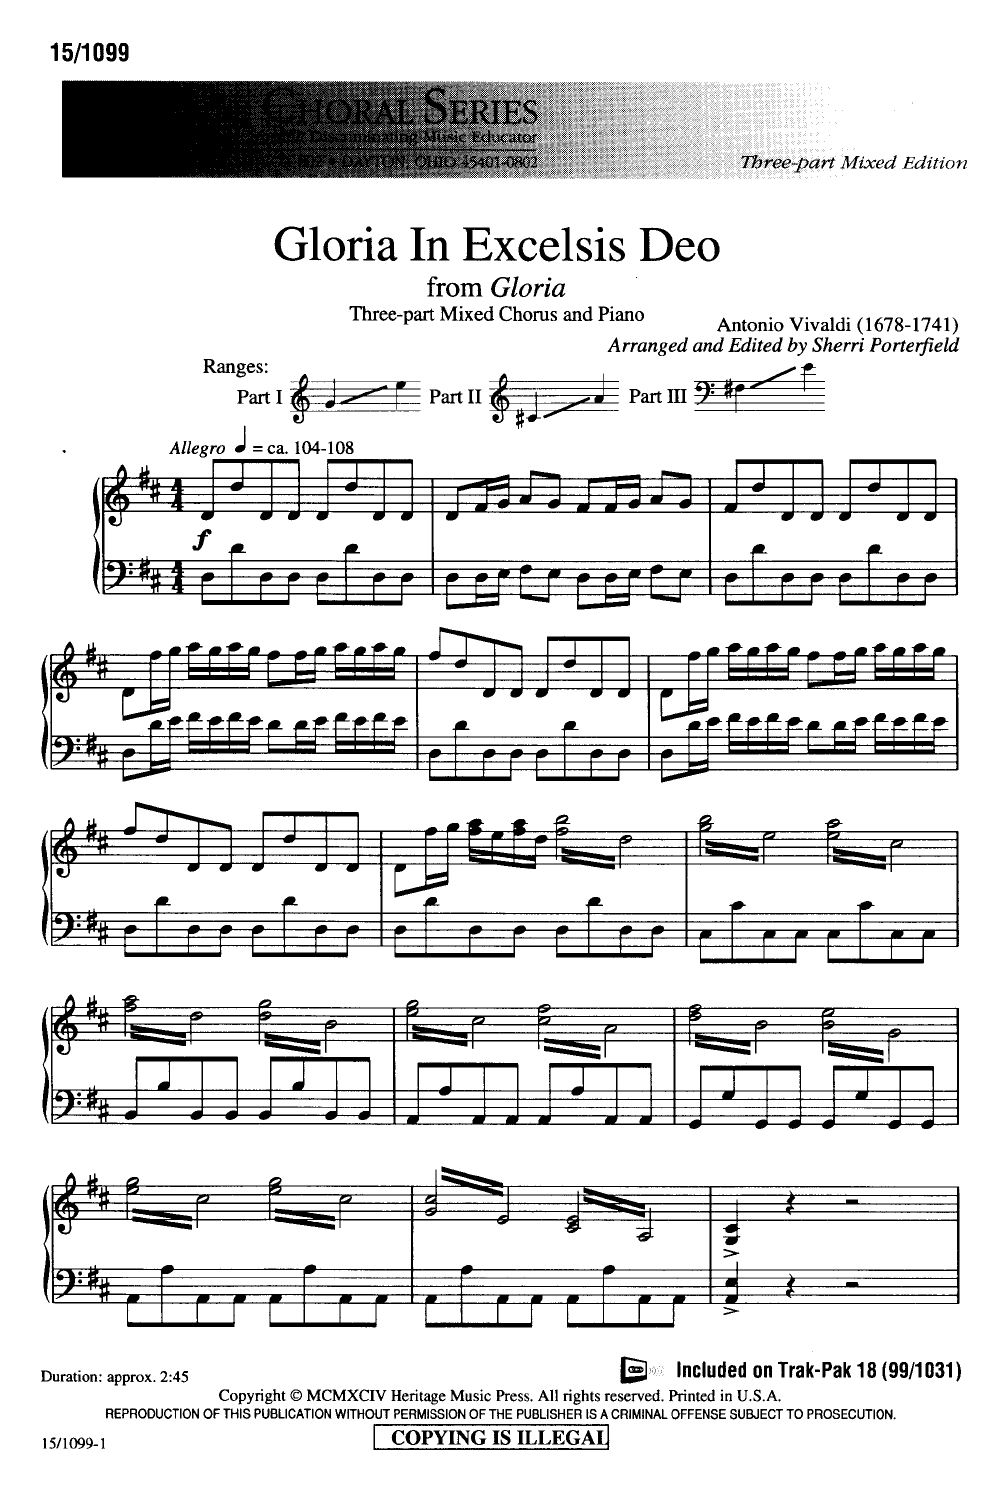 Gloria in Excelsis Deo (Three-Part Mixed ) b | J.W. Pepper Sheet Music